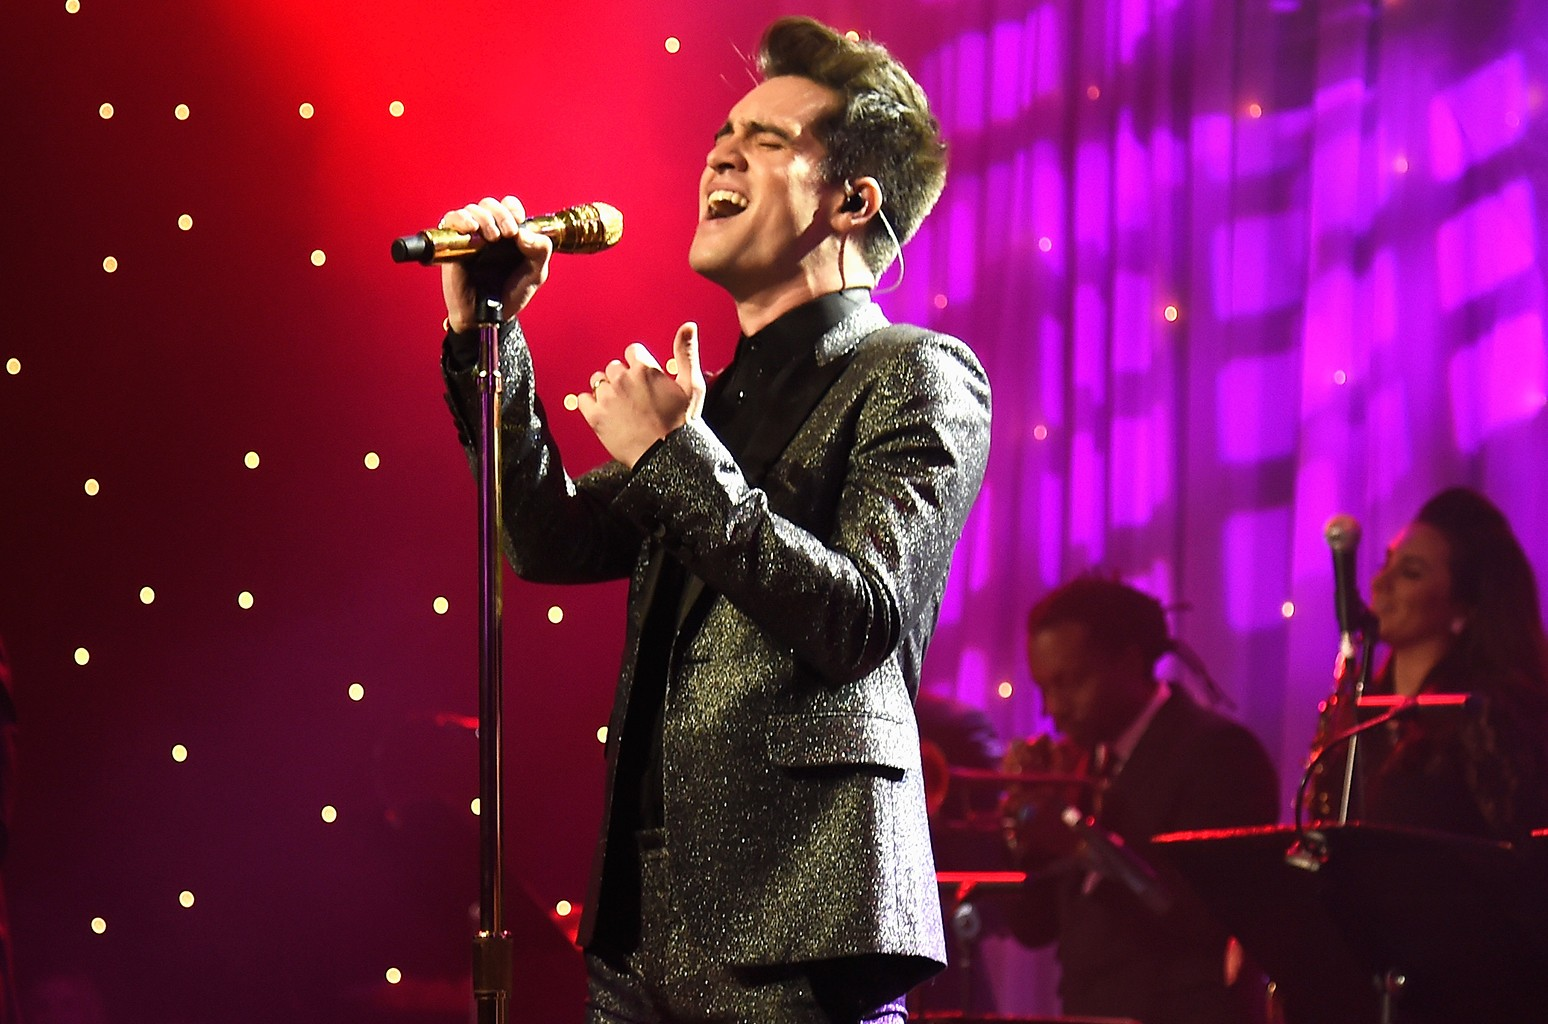 Brendon Urie of Panic at The Disco performs at The Beverly Hilton on Feb. 11, 2017 in Los Angeles.